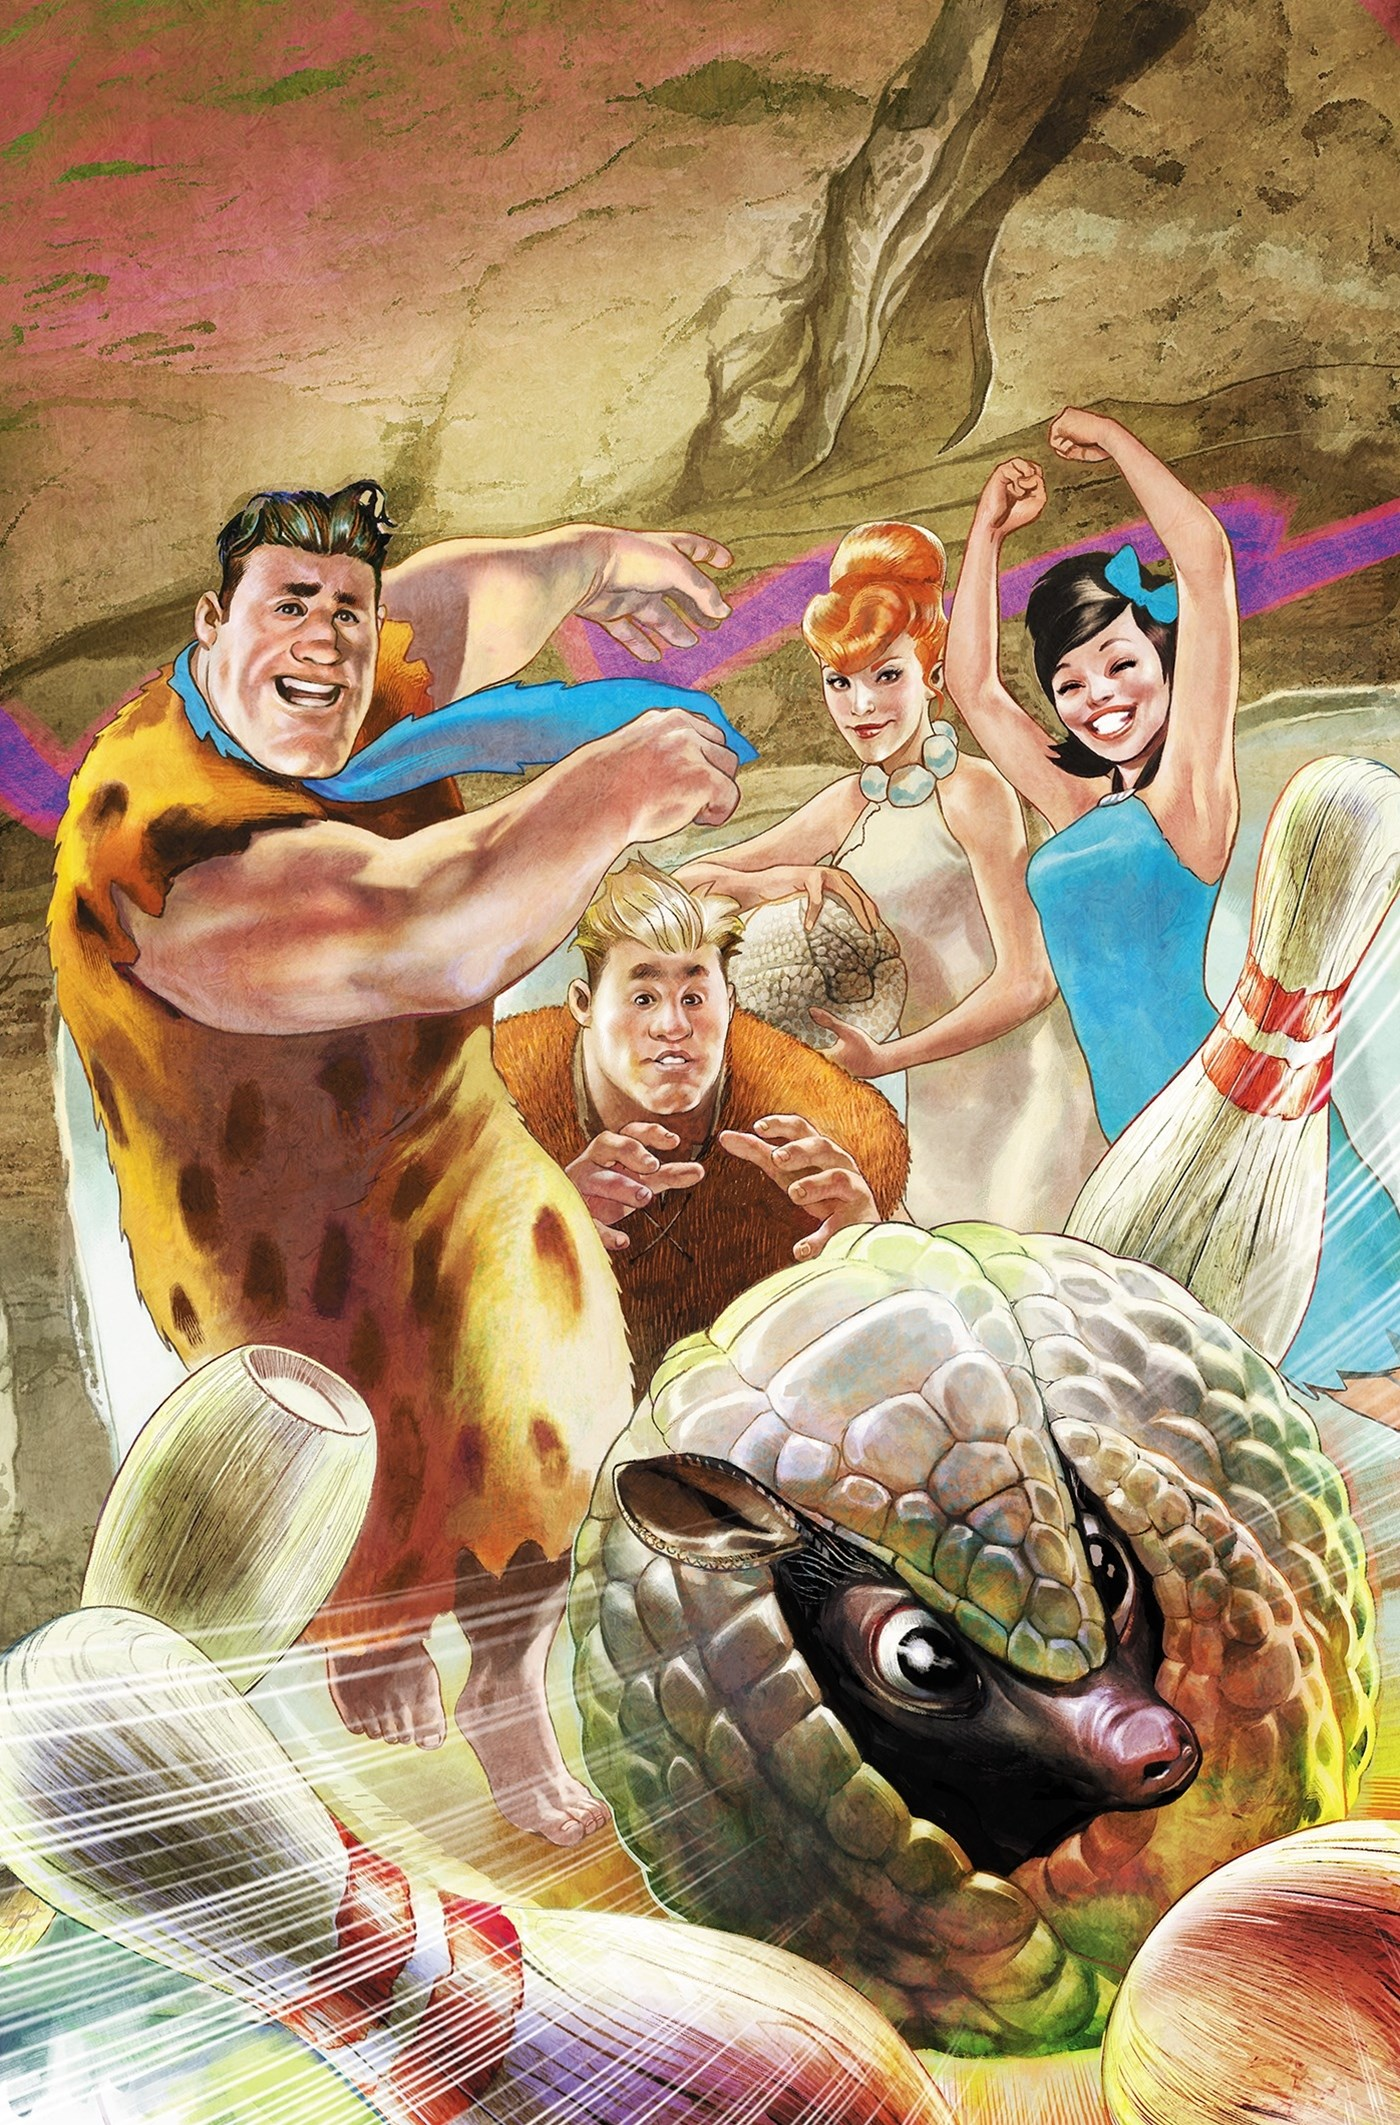 The Flintstones Vol. 2 Bedrock Bedlam